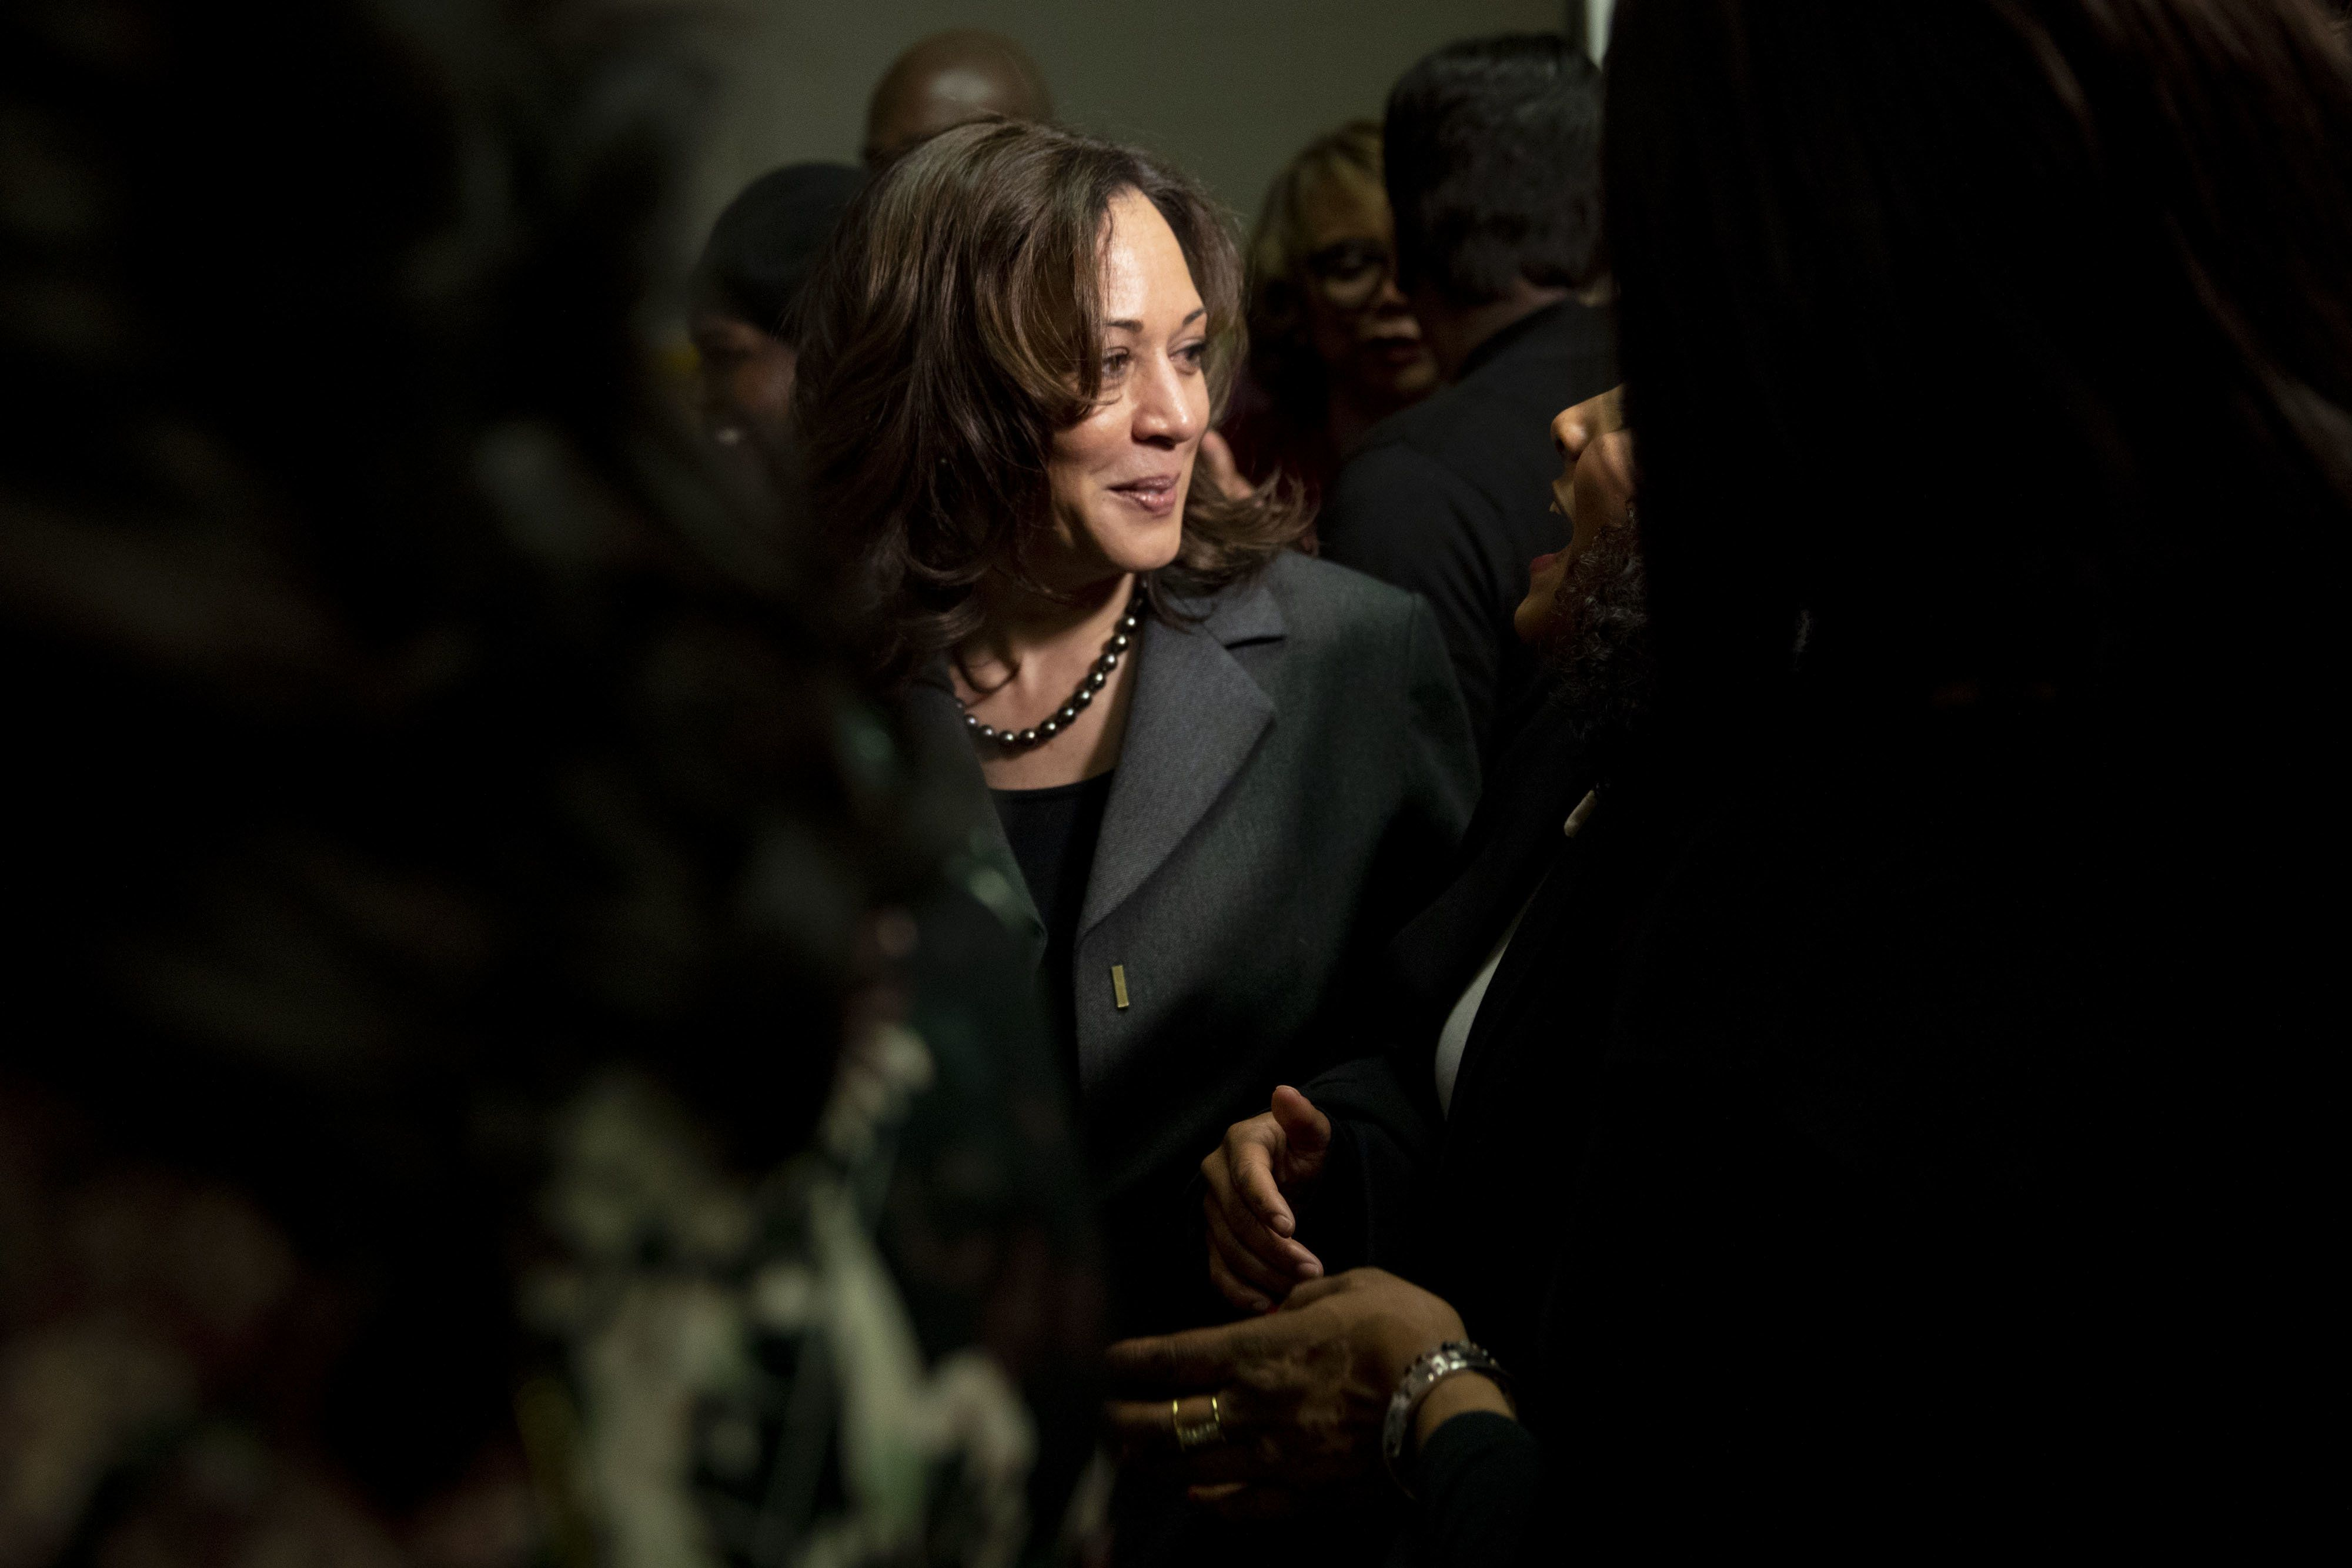 Senator Kamala Harris, a Democrat from California and 2020 presidential candidate, center, greets attendees during a campaign stop in Des Moines, Iowa, U.S., on Saturday, Feb. 23, 2019. Harris is one of six women running for the Democratic nomination to become the first female to hold the highest office in the nation. Photographer: Daniel Acker/Bloomberg via Getty Images